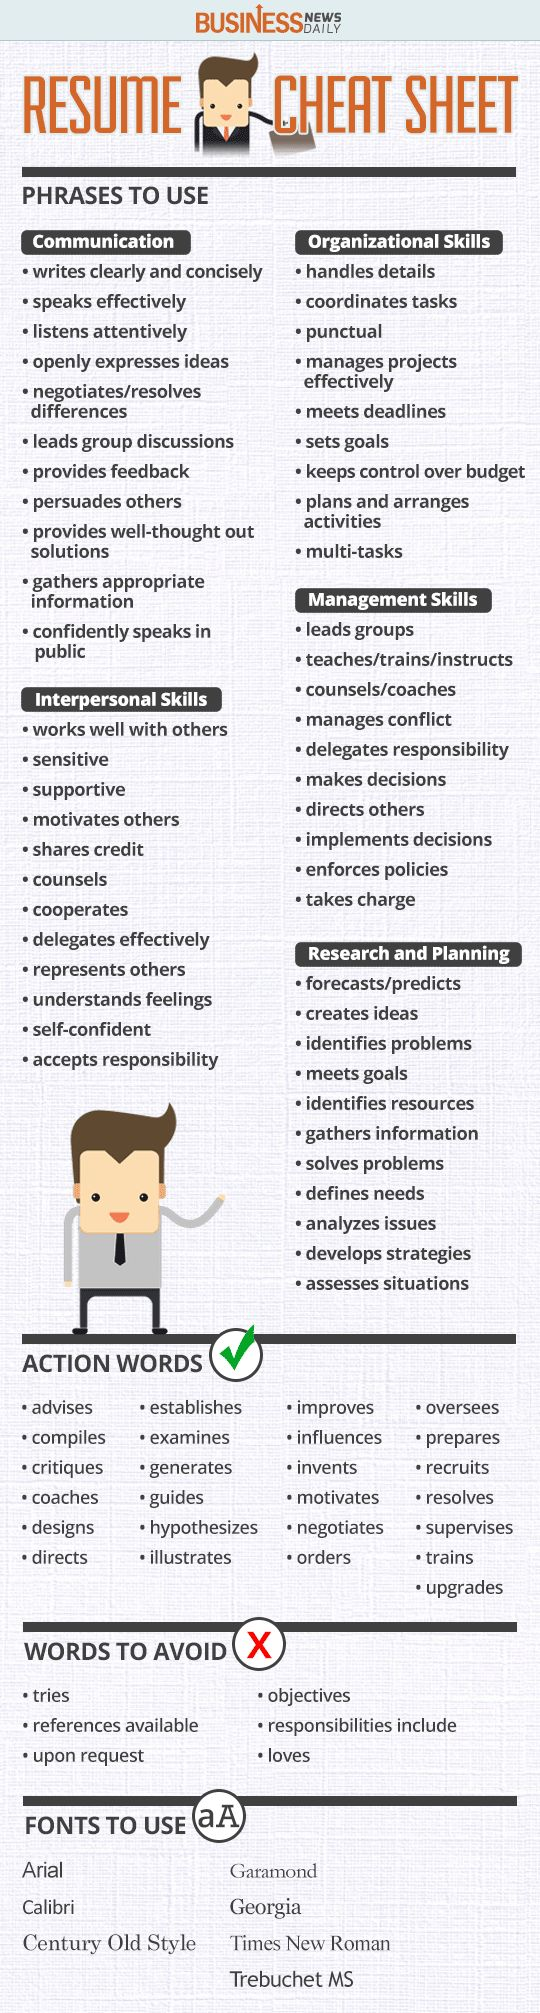 Opposenewapstandardsus  Pleasing  Ideas About Resume On Pinterest  Cv Format Resume Cv And  With Outstanding Resume Cheat Sheet Infographic Andrews Almost Done With A Complete Unit On Employment Which With Easy On The Eye Creating A Resume Online Also Sample Education Resume In Addition Resume Template For Pages And Medical Coding Resume As Well As Personal Skills Resume Additionally Resume For Food Service From Pinterestcom With Opposenewapstandardsus  Outstanding  Ideas About Resume On Pinterest  Cv Format Resume Cv And  With Easy On The Eye Resume Cheat Sheet Infographic Andrews Almost Done With A Complete Unit On Employment Which And Pleasing Creating A Resume Online Also Sample Education Resume In Addition Resume Template For Pages From Pinterestcom